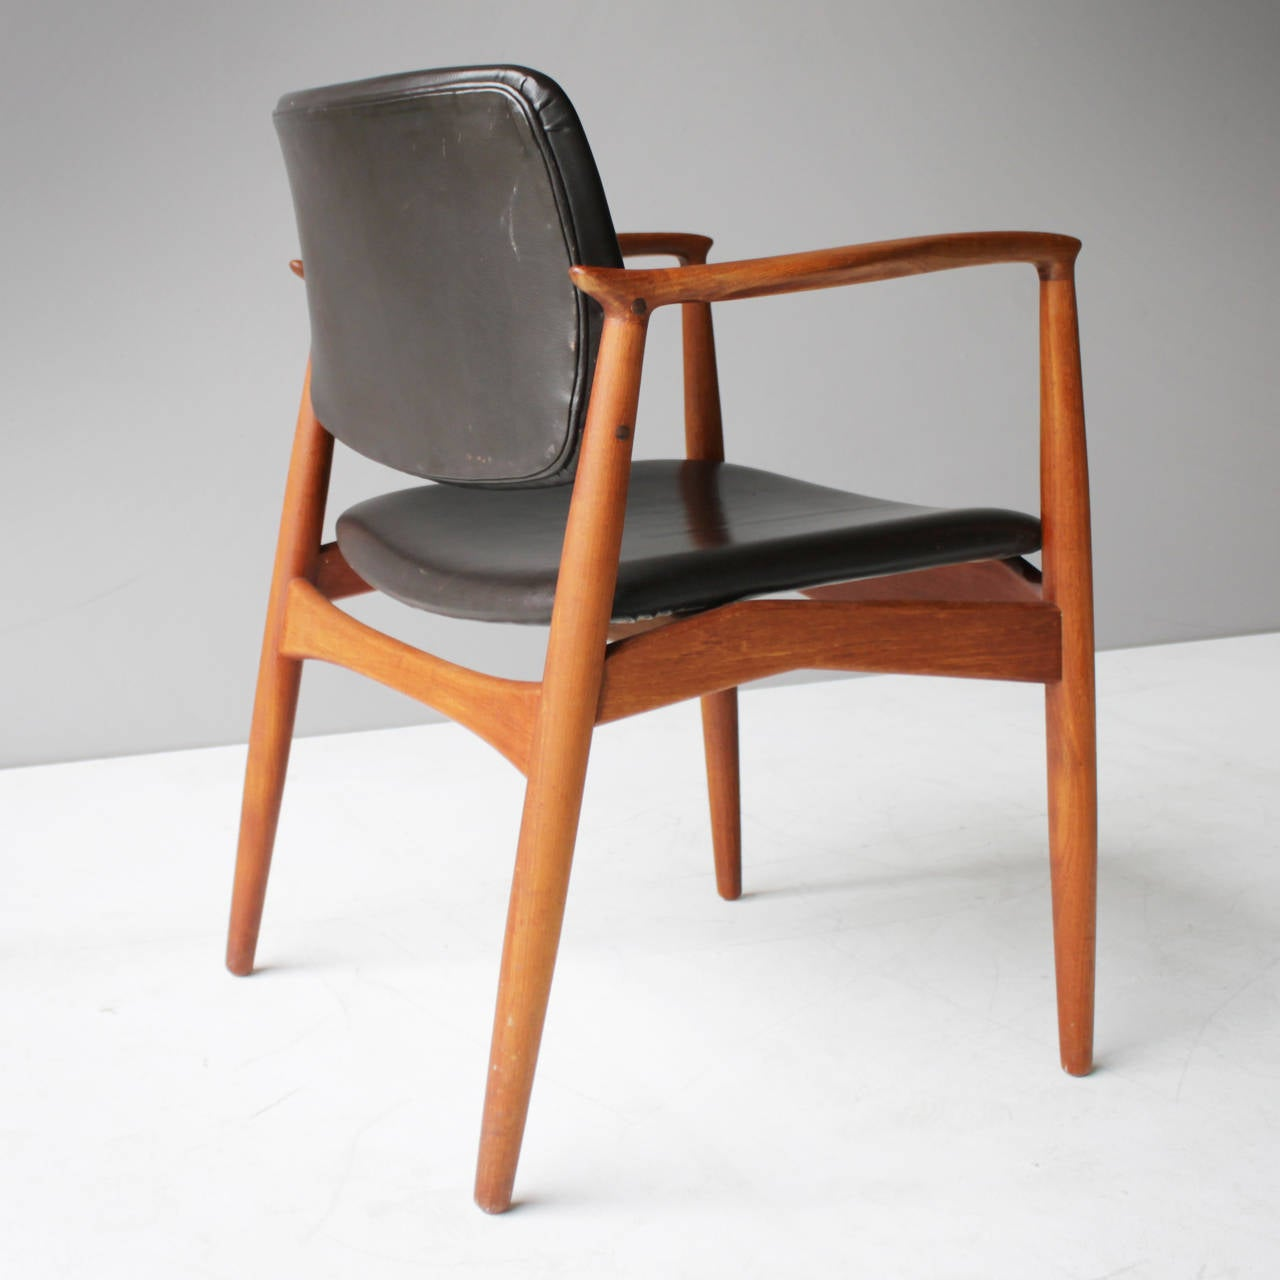 Mid-Century Modern Teak and Leather Chair by Eric Buck for Ø. Mobler, Denmark For Sale